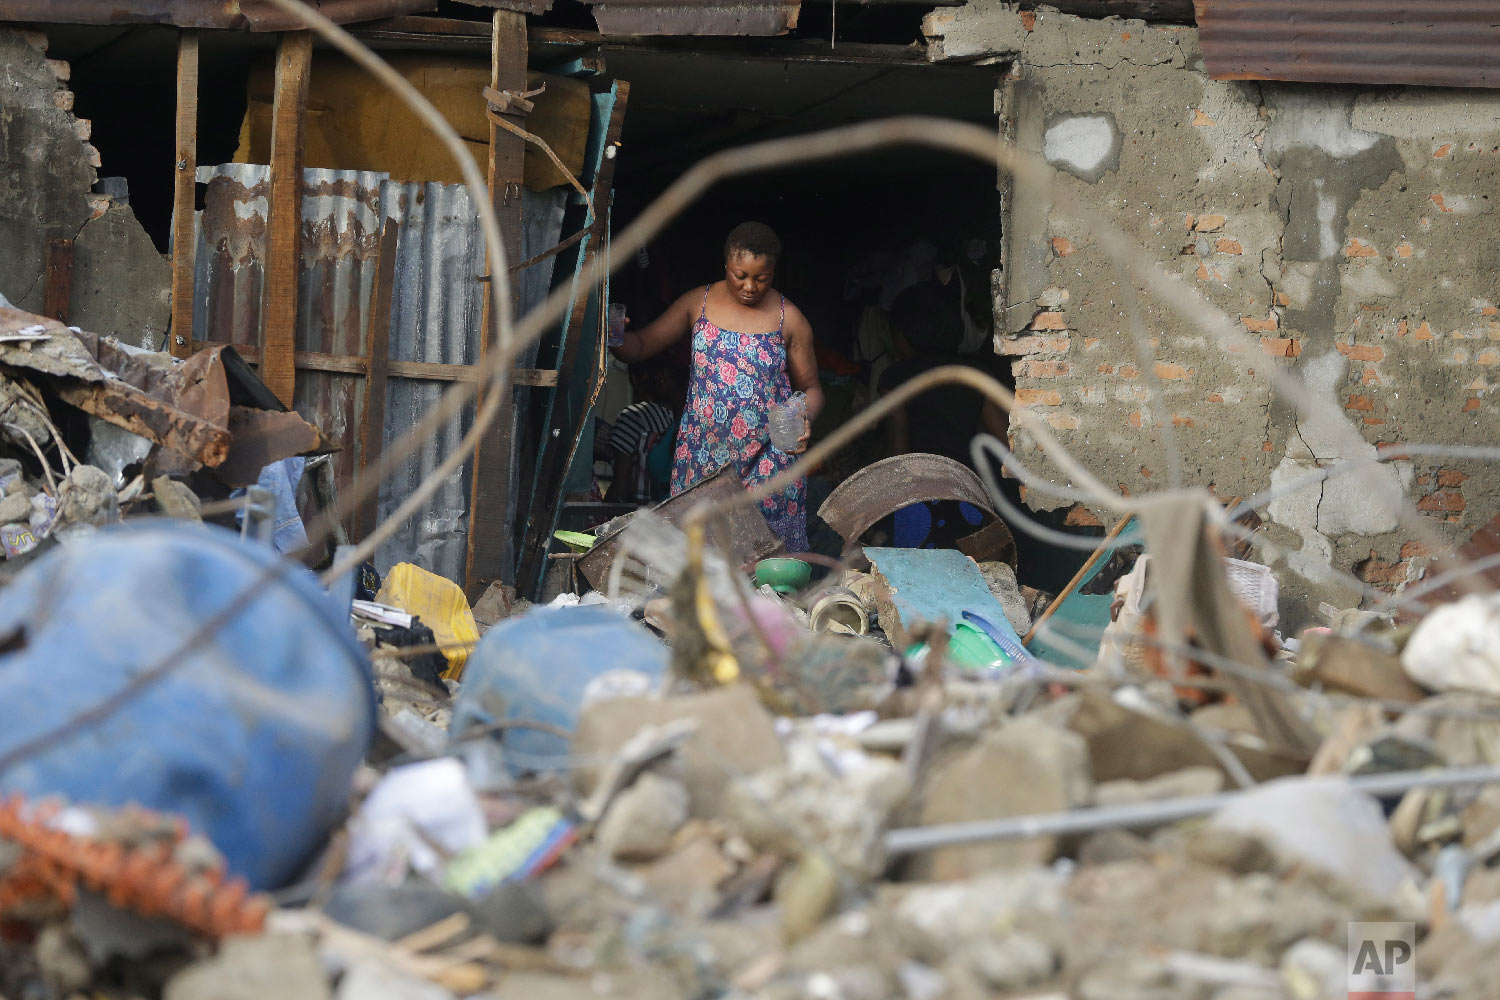 A woman looks at the scene after a building collapsed in Lagos, Nigeria, Thursday, March 14, 2019. (AP Photo/Sunday Alamba)